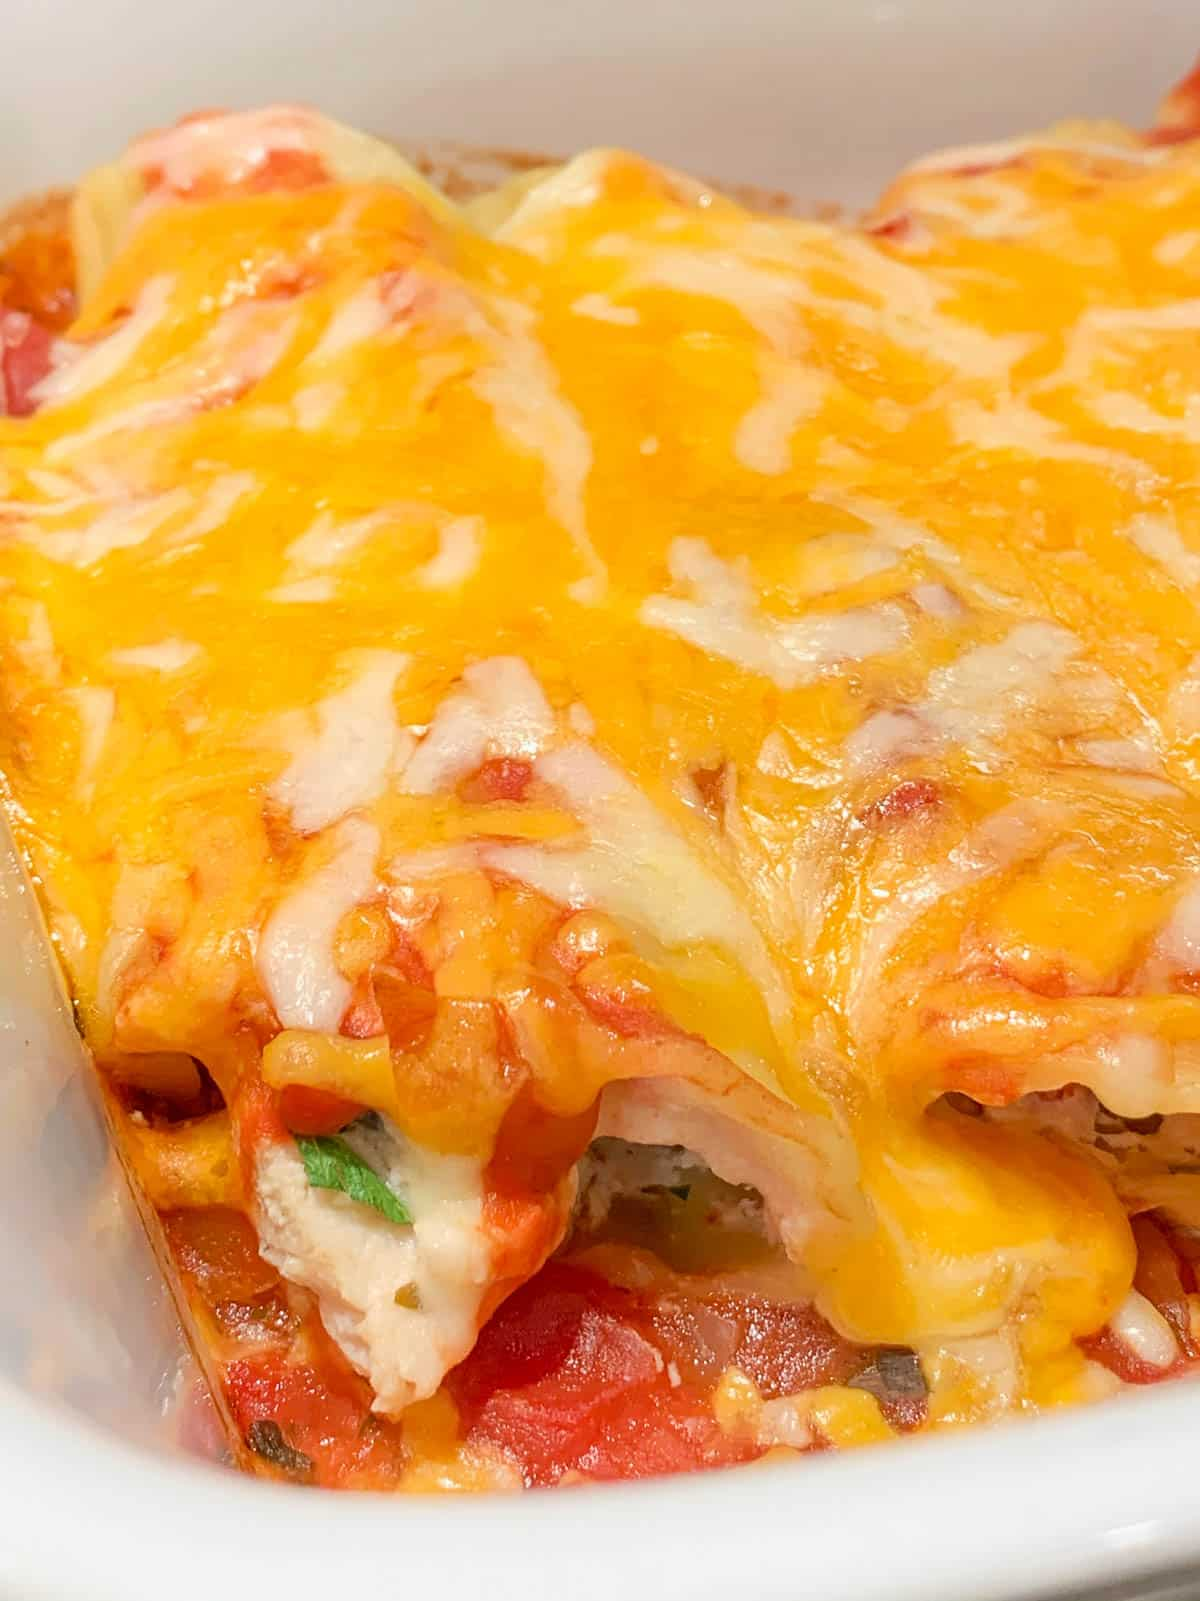 delicious melted cheese on chicken stuffed manicotti shells